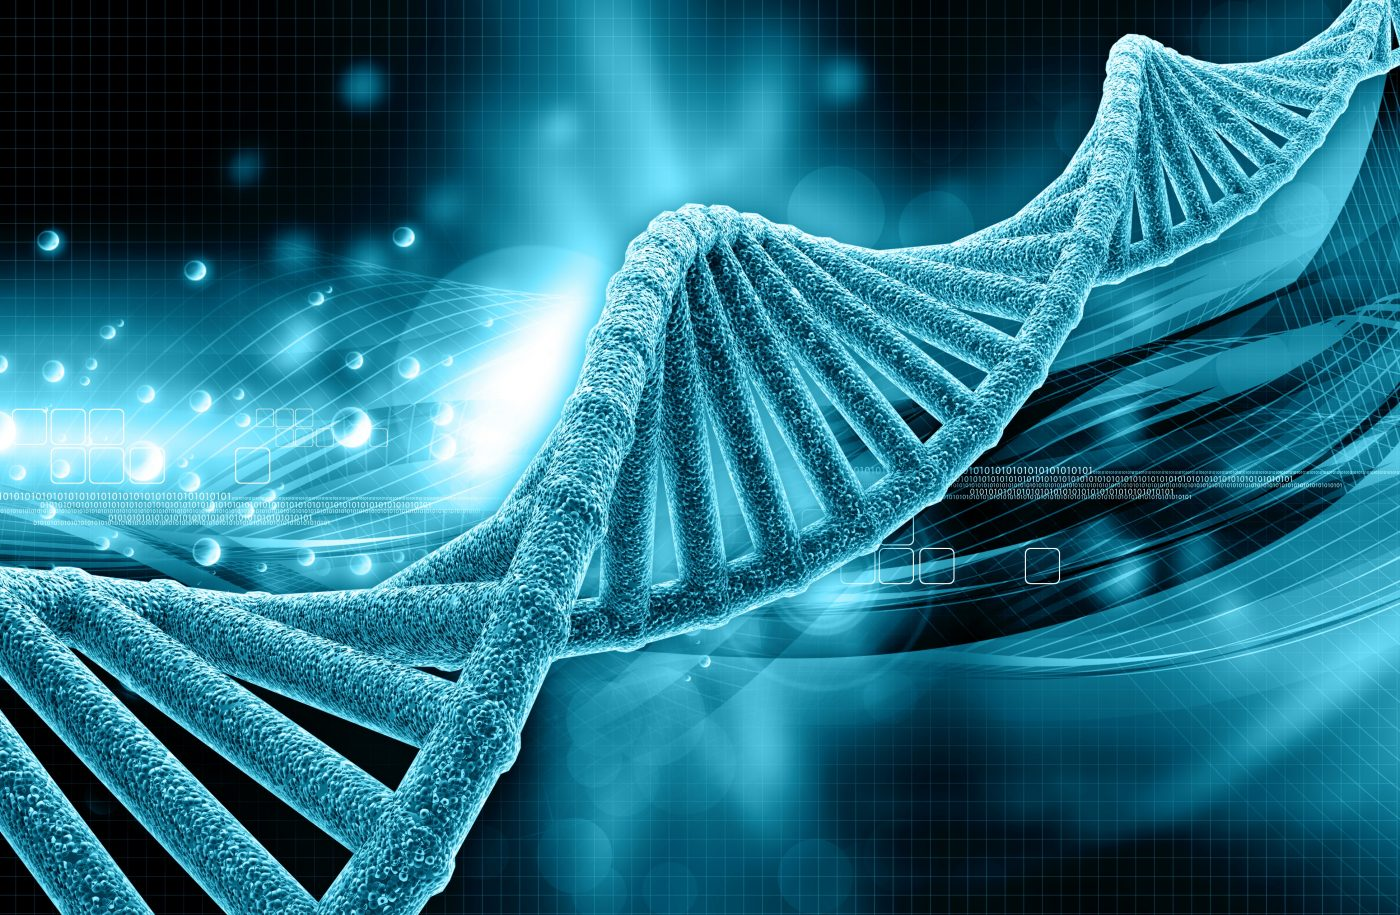 Study Finds Novel Gene Involved in Muscular Dystrophy